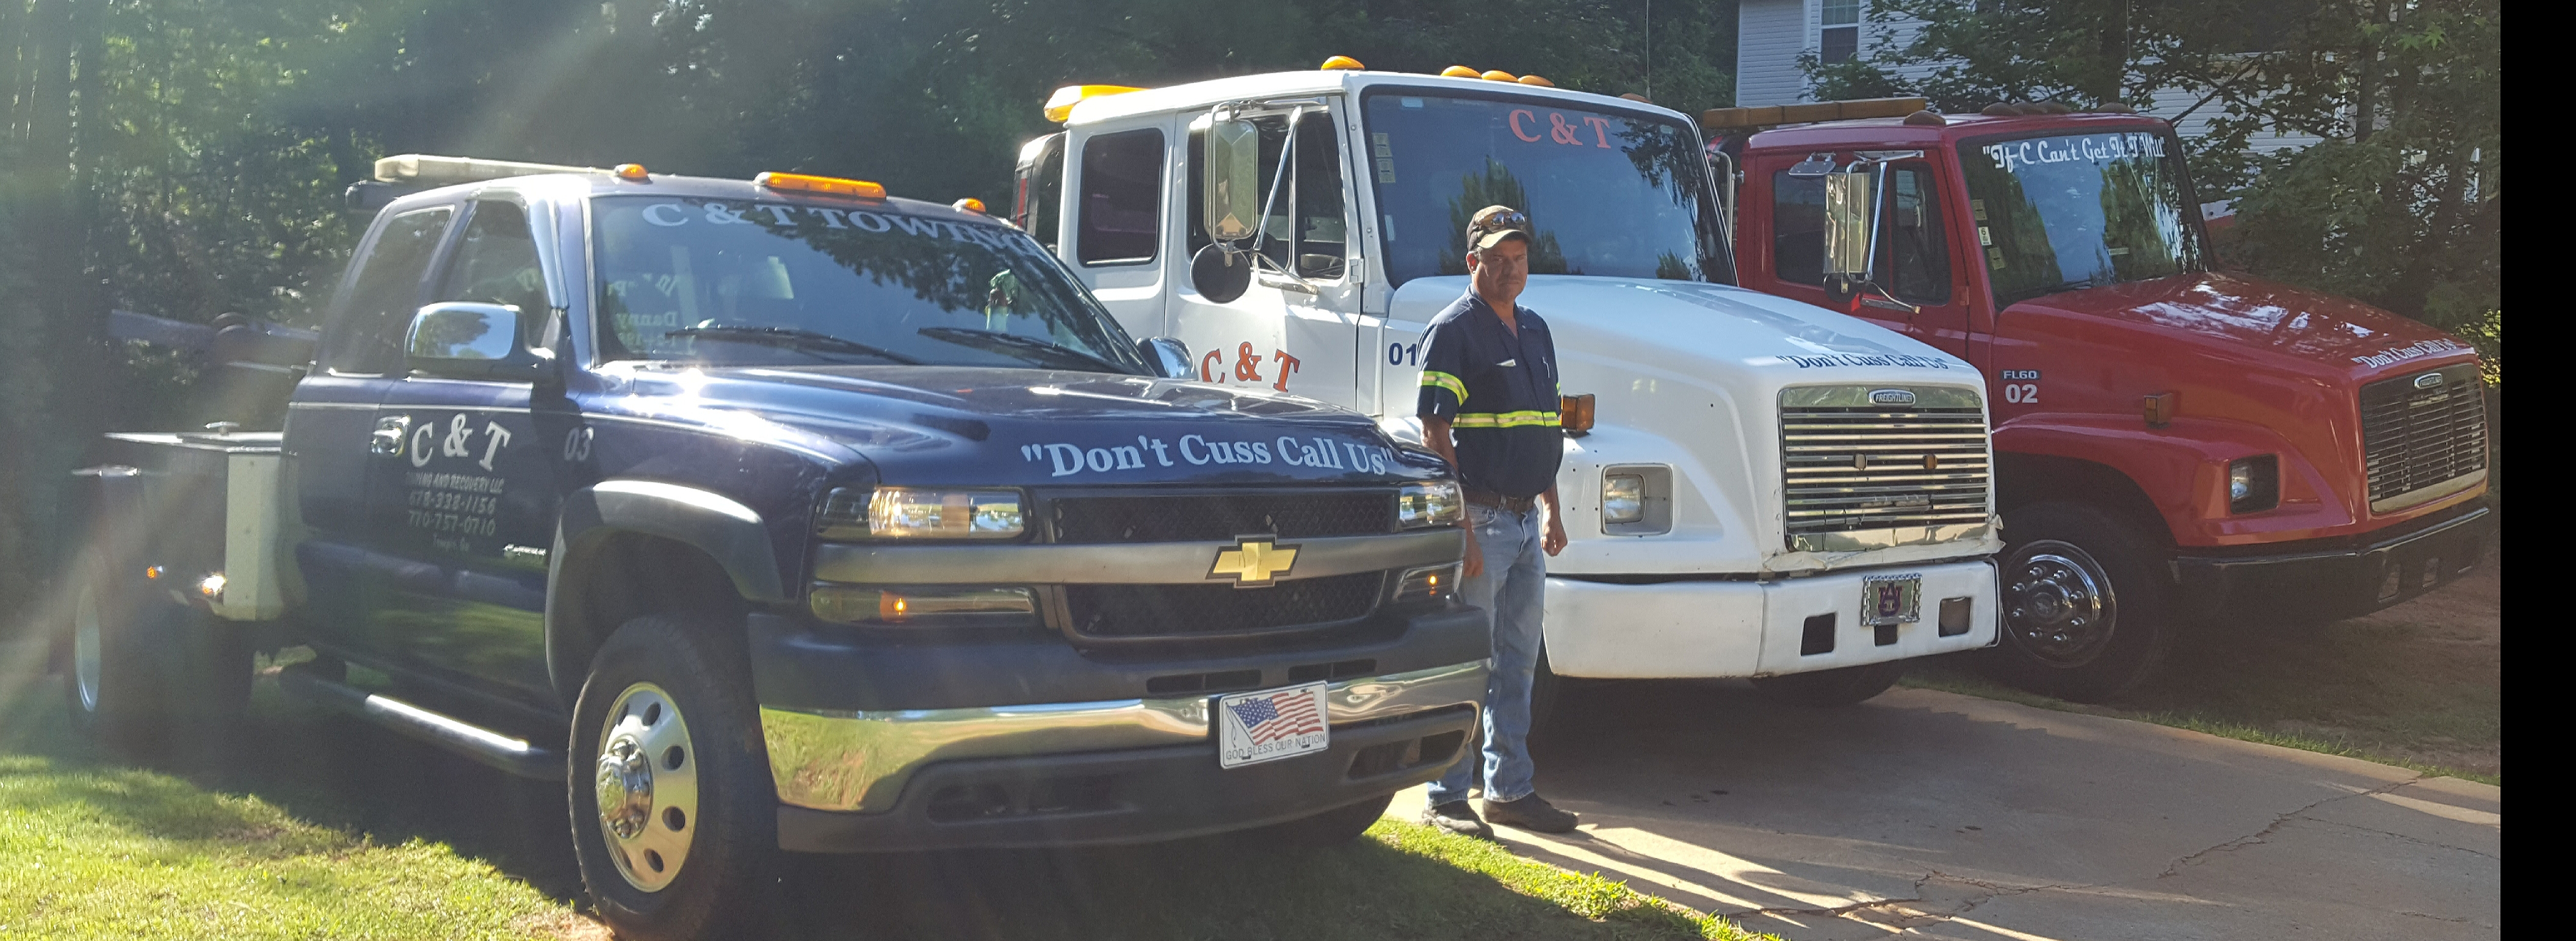 C and T towing and recovery LLC image 0